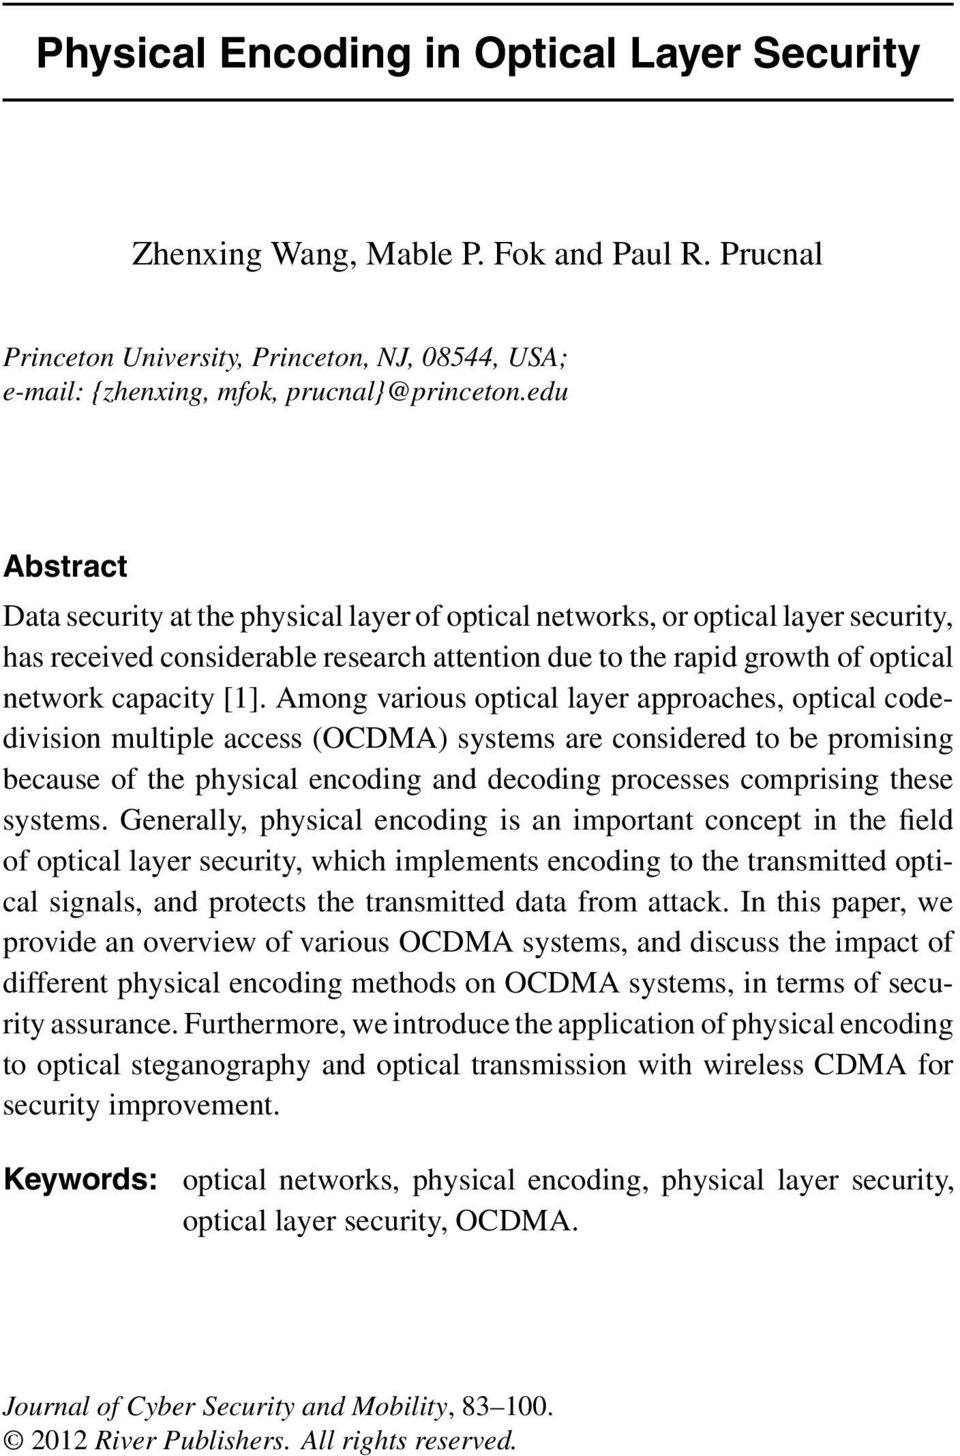 Among various optical layer approaches, optical codedivision multiple access (OCDMA) systems are considered to be promising because of the physical encoding and decoding processes comprising these